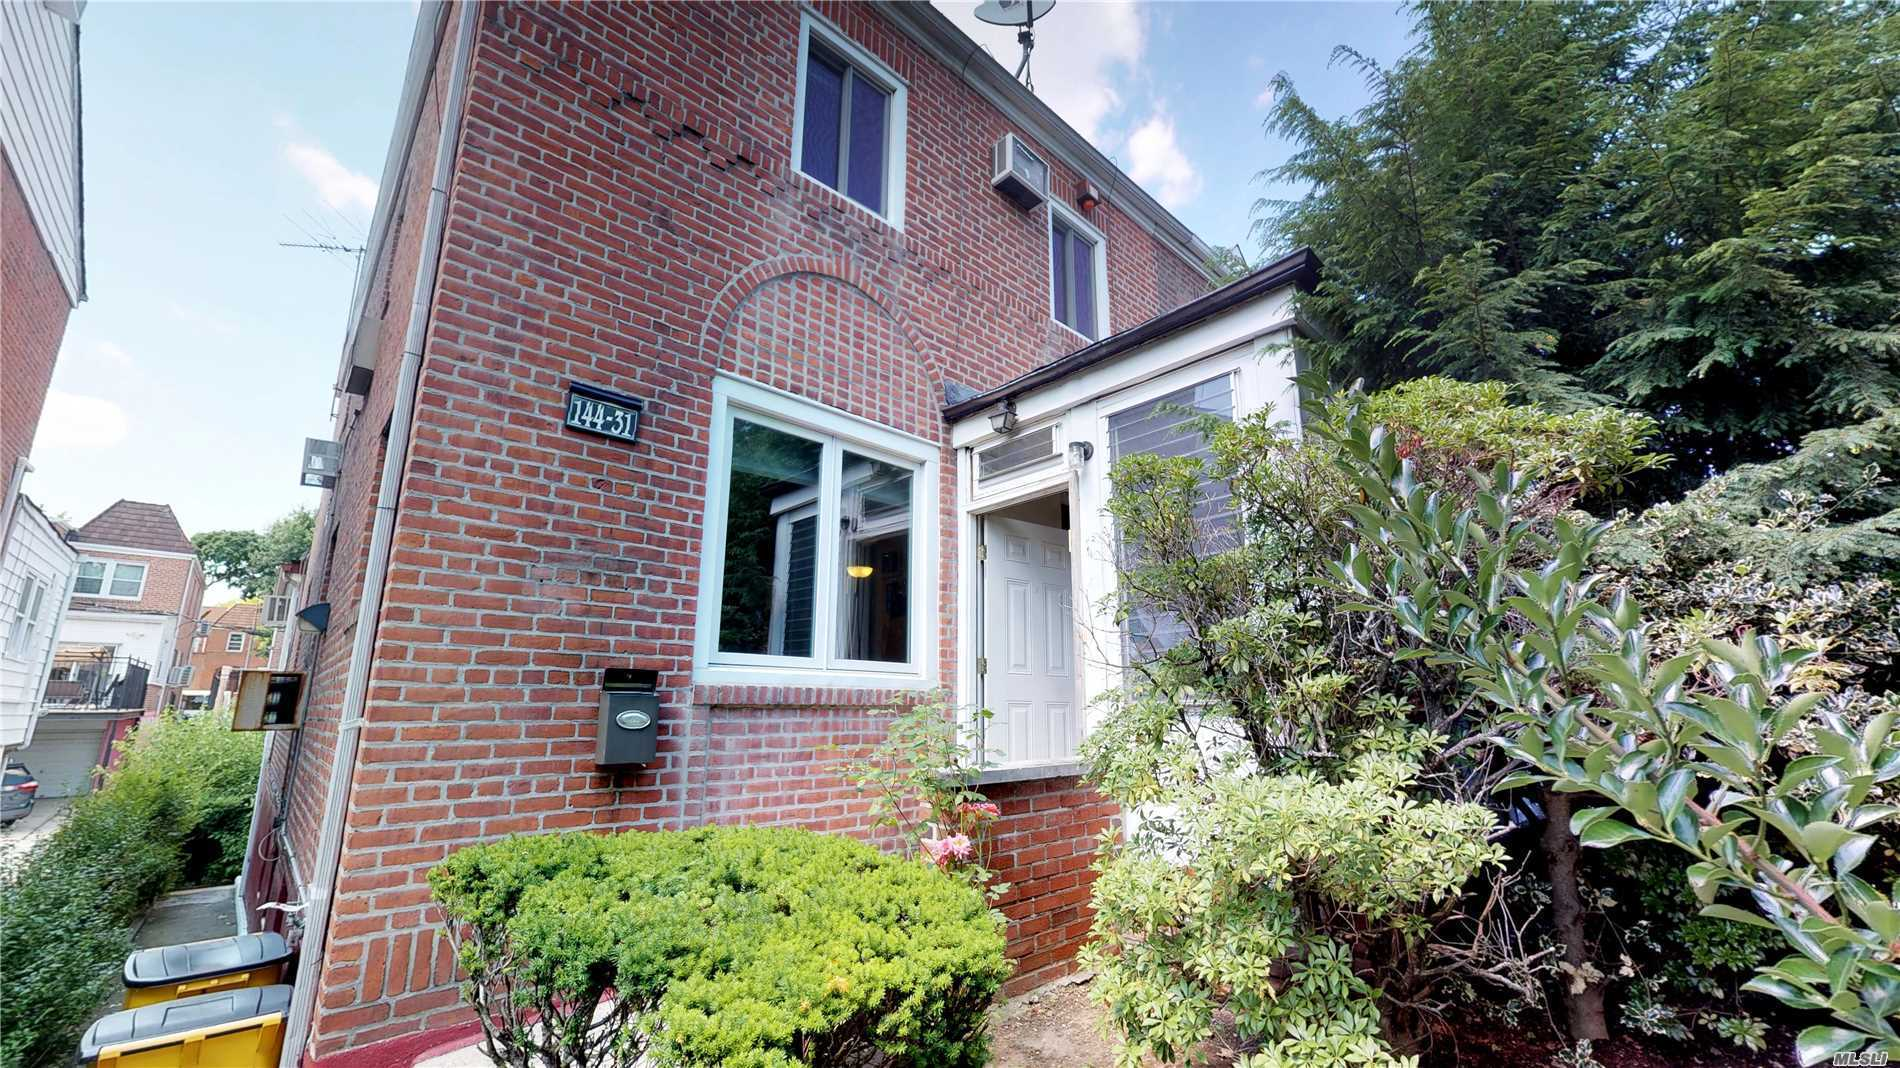 SWEET OPPORTUNITY FOR COMPLETELY RENOVATED 3BR-2.5BA EXPANDED COLONIAL GEM IN THE HEART OF KEW GARDEN HILLS<br><p>Semi-detached gem! Fine quality 3Br-2.5Bath expanded colonial with deck, finished walk-in mother-daughter basement, and finished attic. Too many exciting features, a homeowner's dream!<br><p>2180 Sqft home on 25x100 lot with deep 20x38 structure. Excellent location!<br><p>Entirely move-in ready and you don't spend a penny! Gorgeous Interior. Airy open layout, with each room flowing into the next.<br><p>First Floor:<br> Inviting entrance with enclosed porch room, walk into a massive sunken living room, flowing into deep formal dining room, chef's gourmet granite/stainless fully equipped kitchen, newly remodeled 1/2 bath, expansive den or convertible 4th bedroom overlooking the dining room with sliding doors to an enormous finished deck. Rich new flooring, fine finishes throughout.<br><p>2nd Floor:<br> King size master bedroom, large 2nd & 3rd bedrooms, exquisite new full bath with 6ft tub and additional shower stall, dedicated laundry area with premier quality washer & dryer, amazing closet space, staircase to spacious finished attic<br><p>Basement:<br>Finished legal basement, mother-daughter style, separate entry, complete kitchenette, family room, bedroom, full bath, 2nd laundry area, amazing storage.<br><p>Private outdoor patio, 2-car driveway, and attached garage.<br><p>Structurally sound and headache free. Roof,  windows, and 4yr old gas boiler are in excellent condition. Updated plumbing and electrical. <br><p>Pristine lush tree-lined street, very fine residential neighbrohood, steps to all shops and transportation, near all highways. Easy access to Q64 bus and express buses, short ride to 71st Ave E/F/R/M subway and LIRR. 45min commute to midtown.<br><p>Excellent upside potential in a very desired neighborhood.<br><p>Please call to schedule a viewing. Virtual walkthrough and floorplans available.<br><p>Experience a  3-D Virtual Tour by Clicking on the link